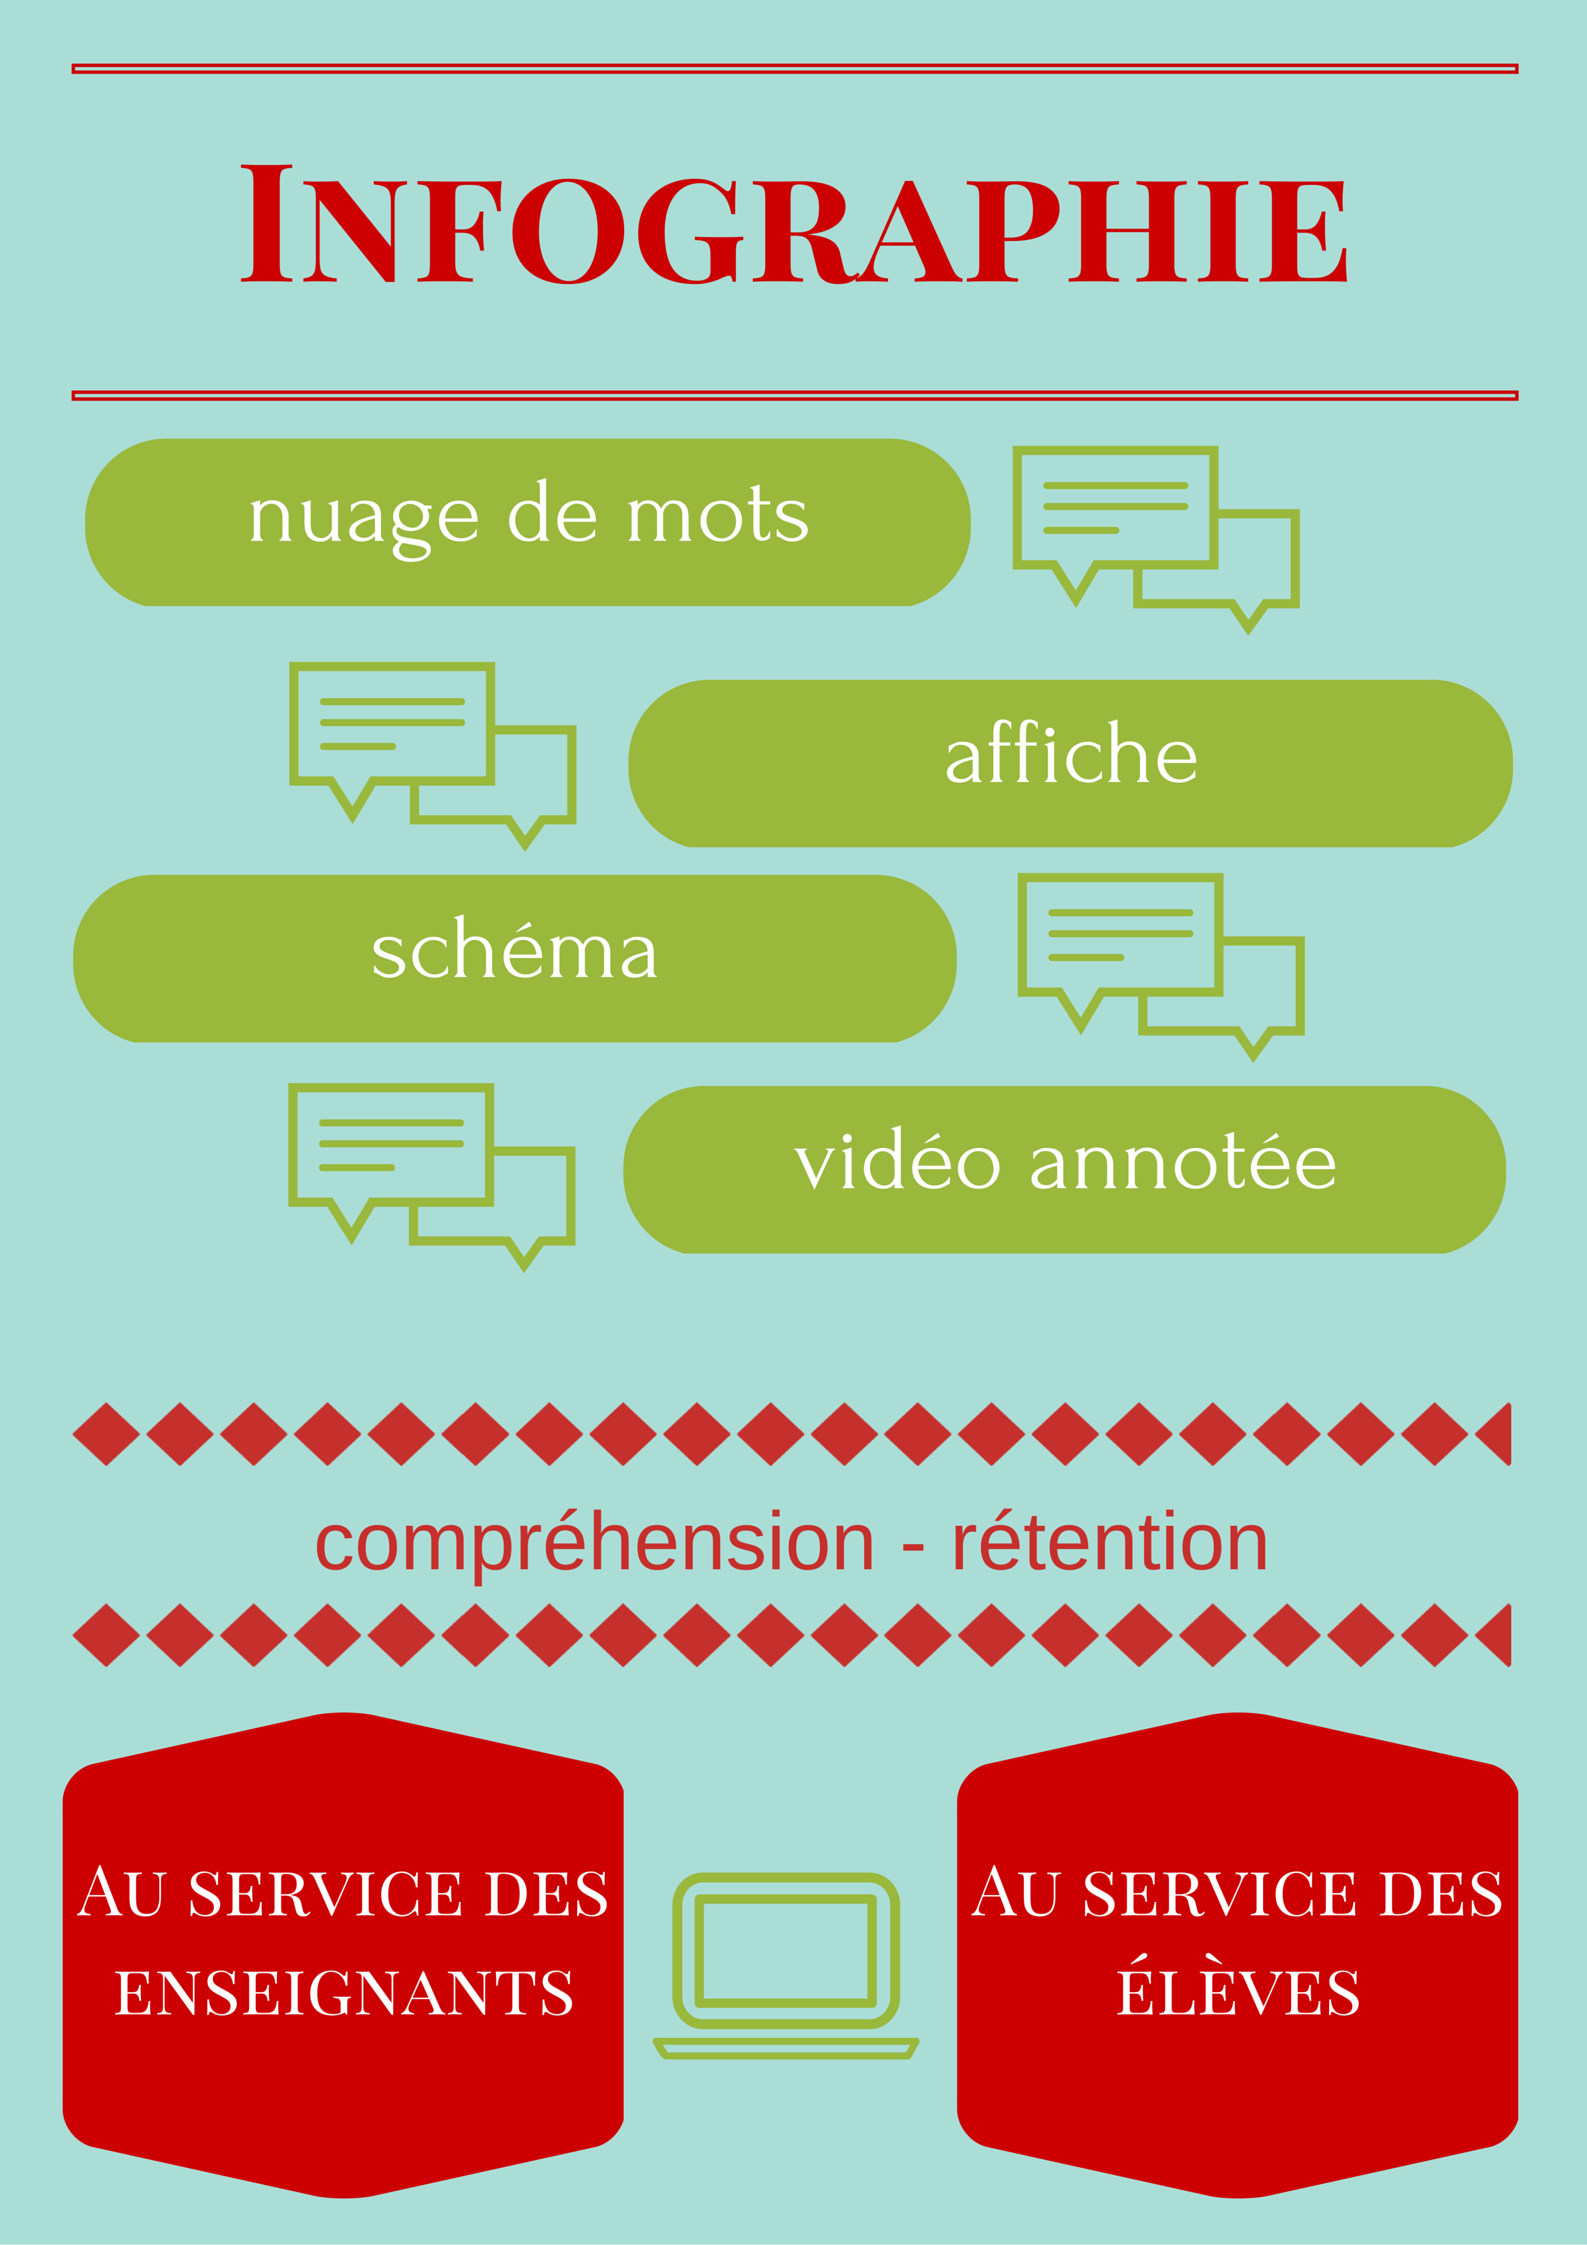 L Infographie Educative Rendue Facile Ecole Branchee Education Infographie Enseignement